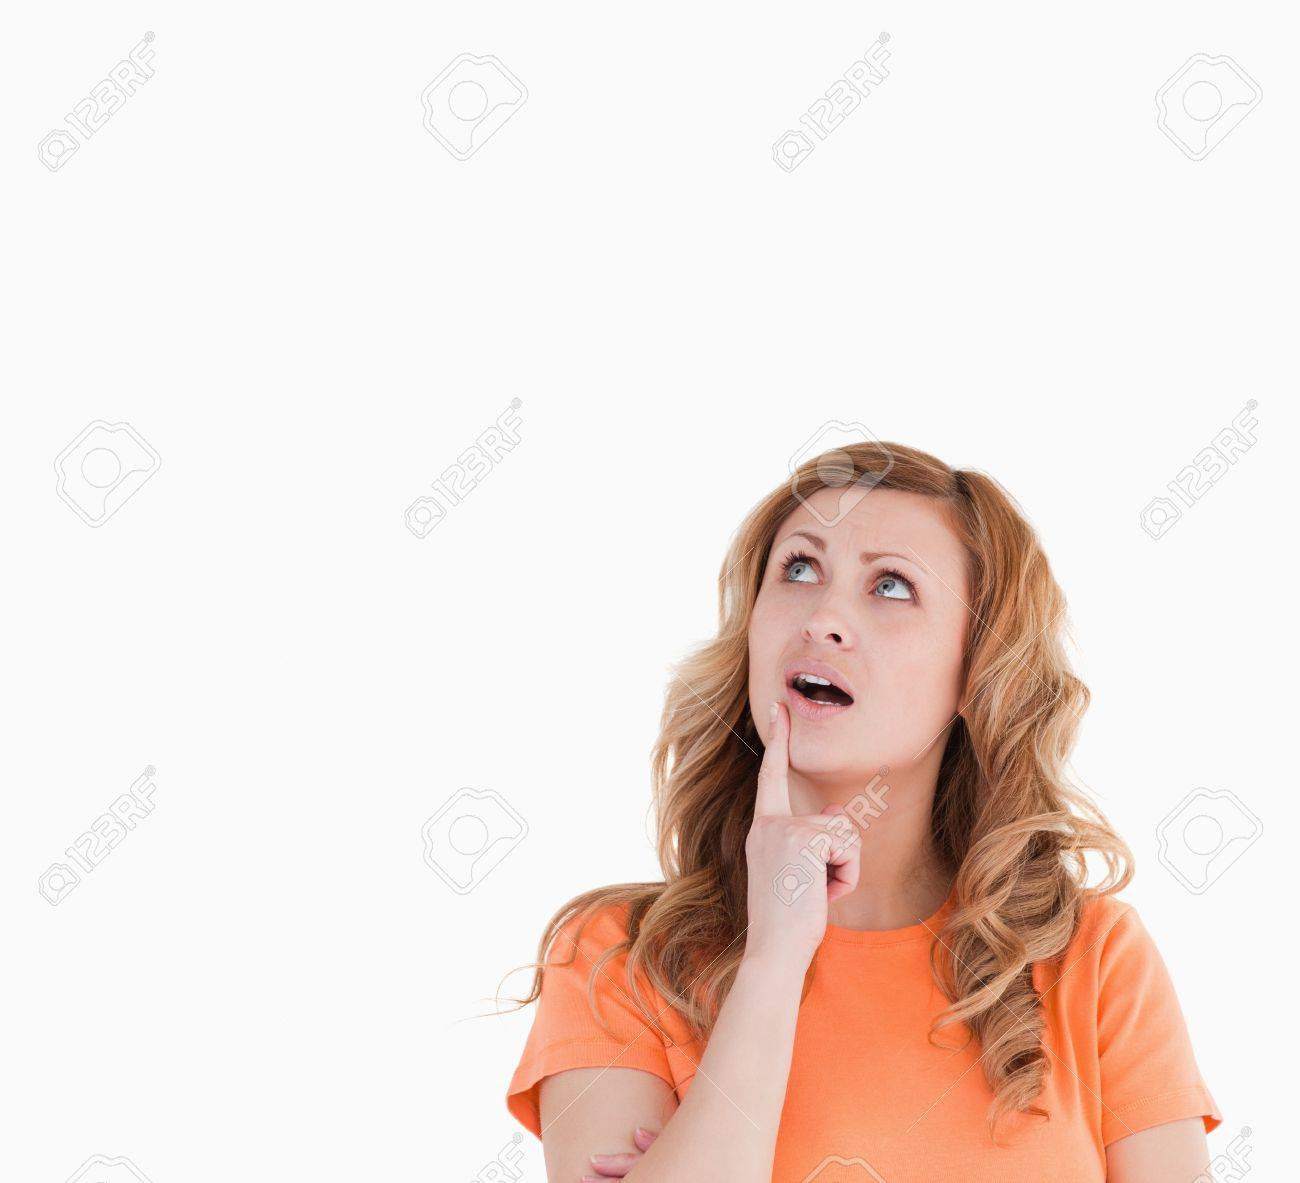 Cute woman thinking about something on a white background Stock Photo - 10194110